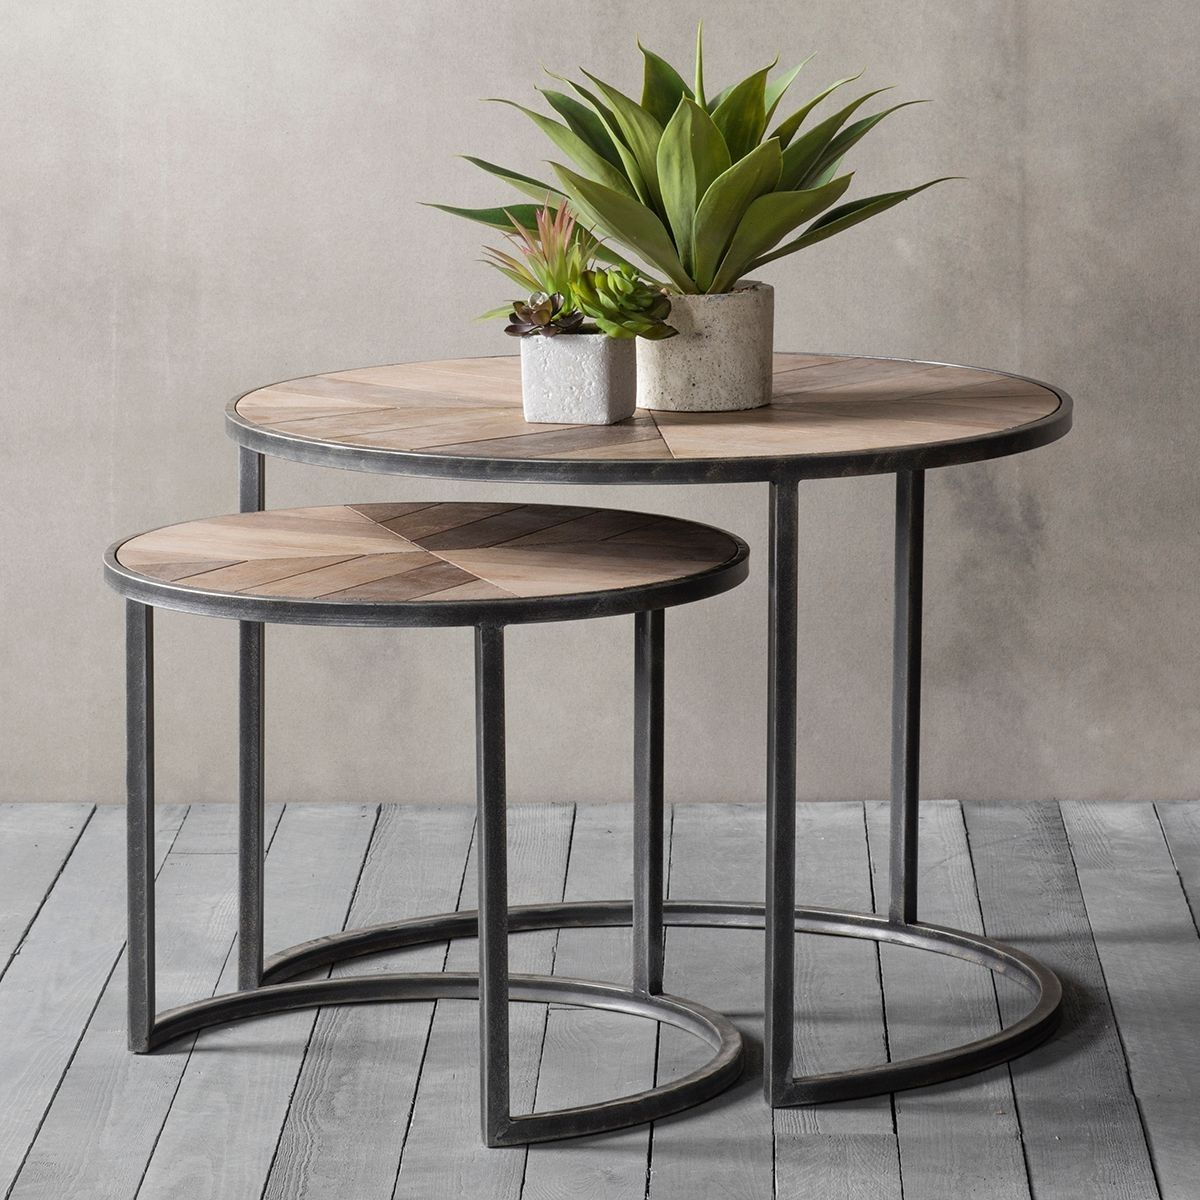 Dilwyn Coffee Table Nest Of 2 Nesting Coffee Tables Coffee Table Wood Modern Side Table